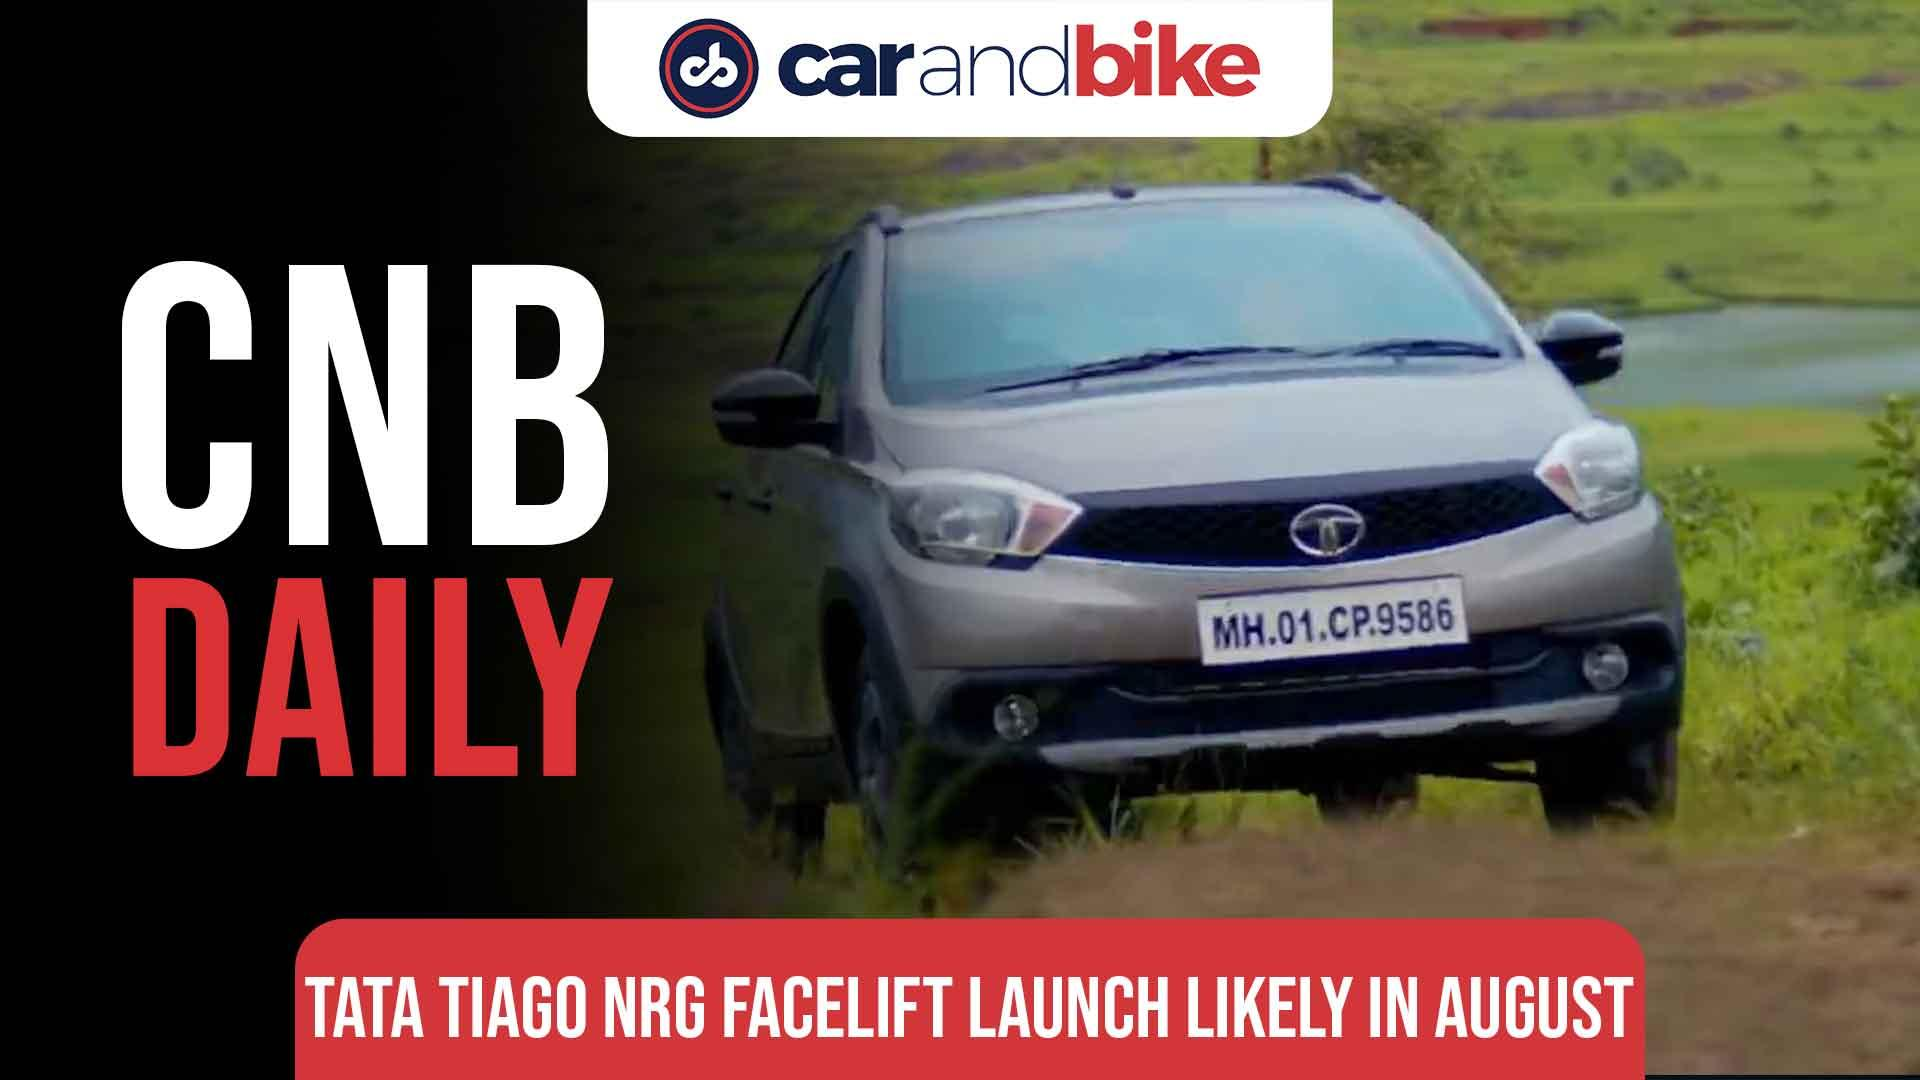 Tata Tiago NRG Facelift Launch Likely On August 4, 2021